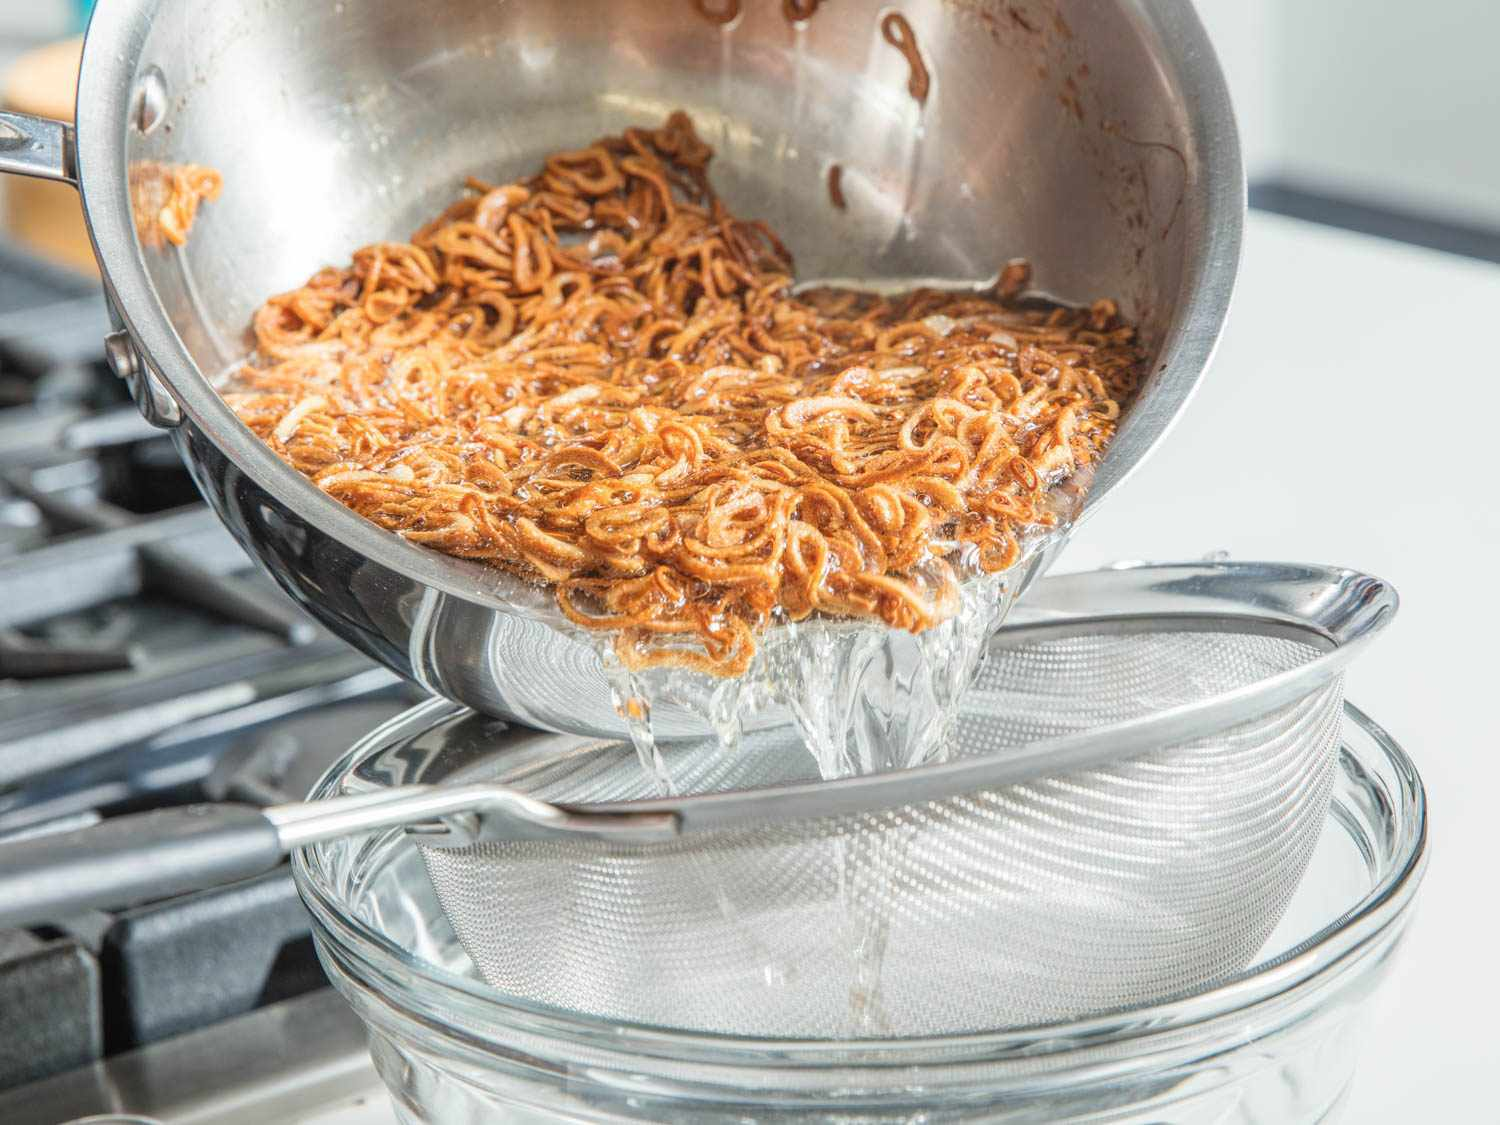 Draining fried shallots in a fine-mesh strainer over a heat-proof bowl.